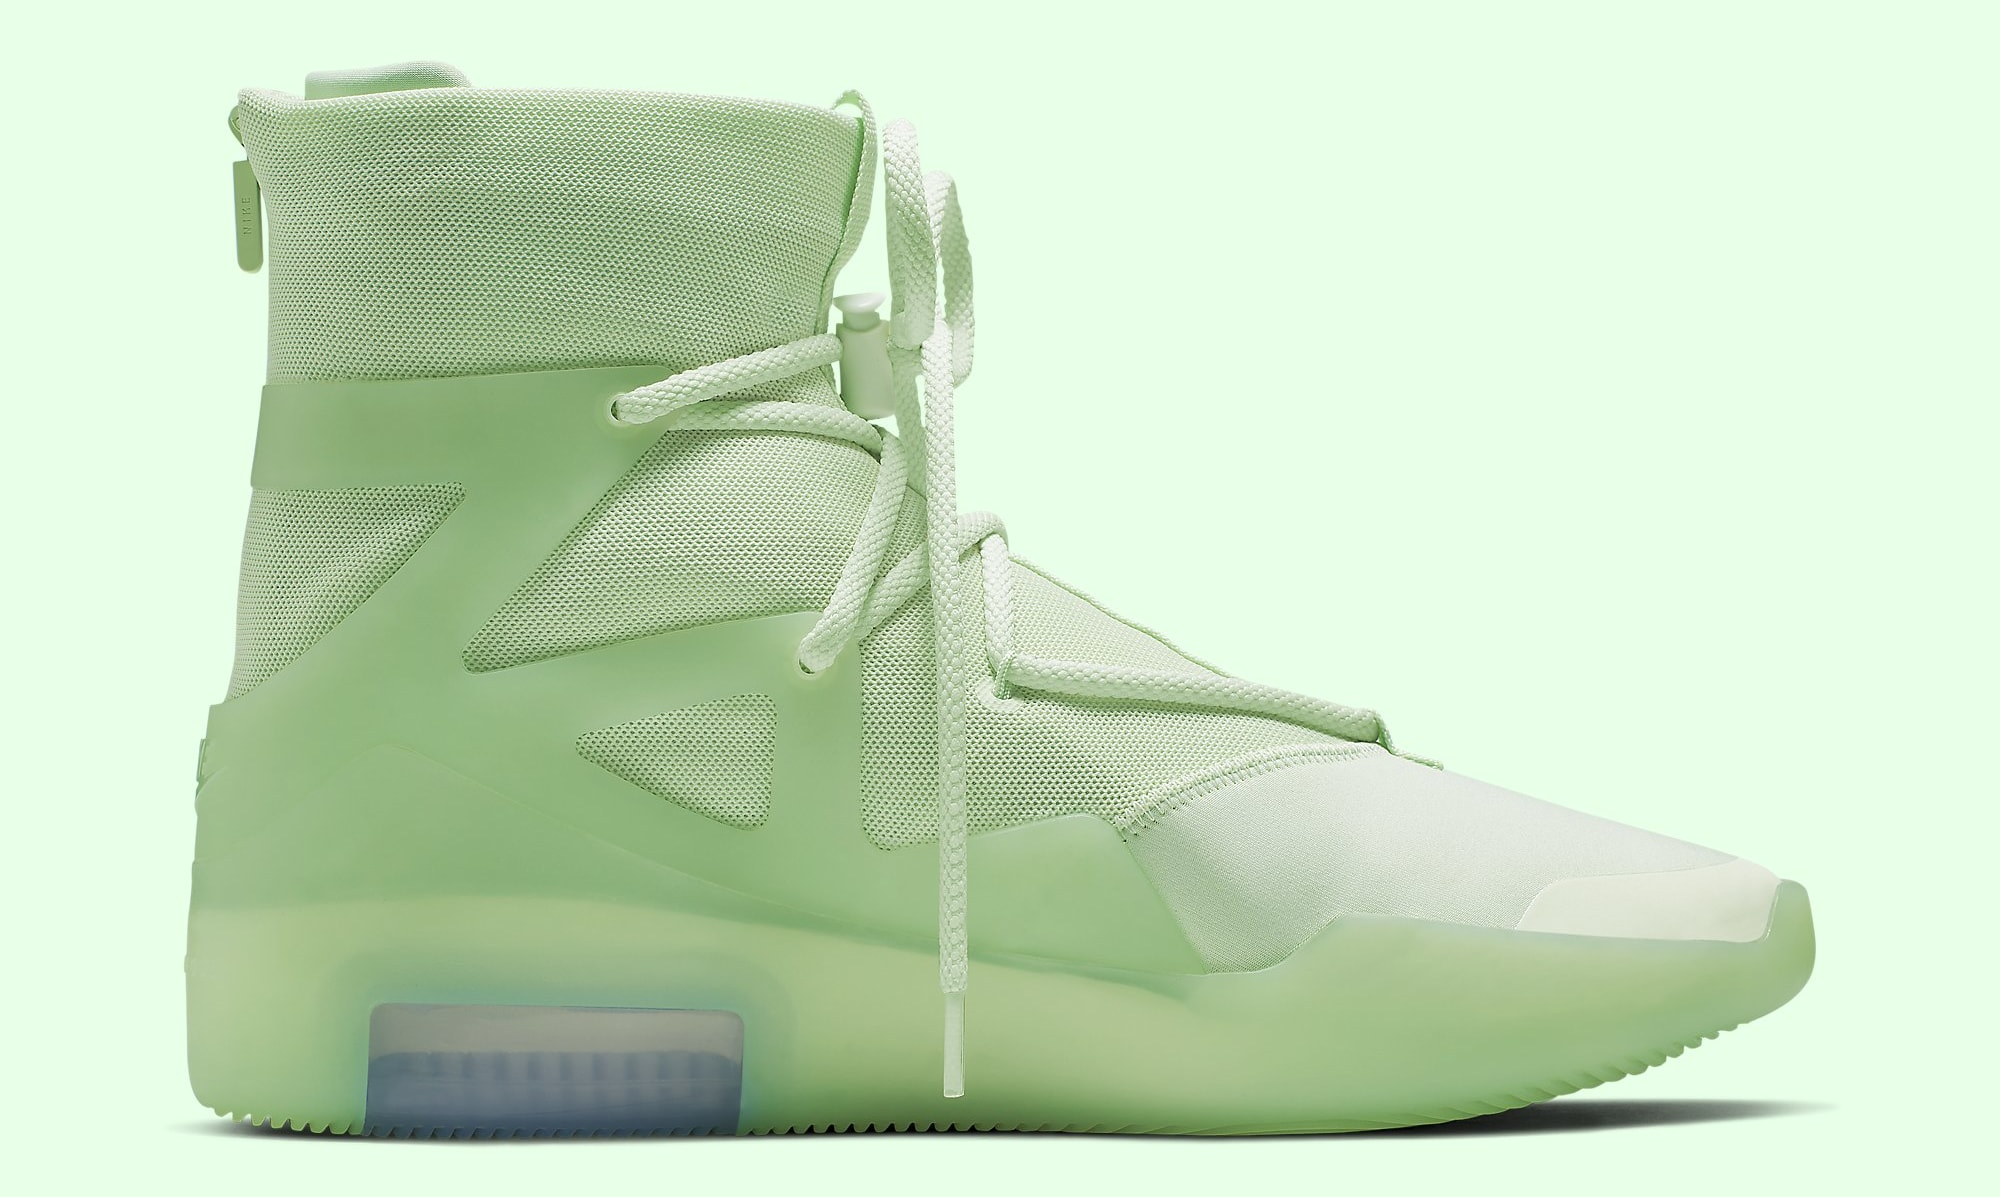 Nike Air Fear of God 1 'Frosted Spruce' AR4237-300 Medial